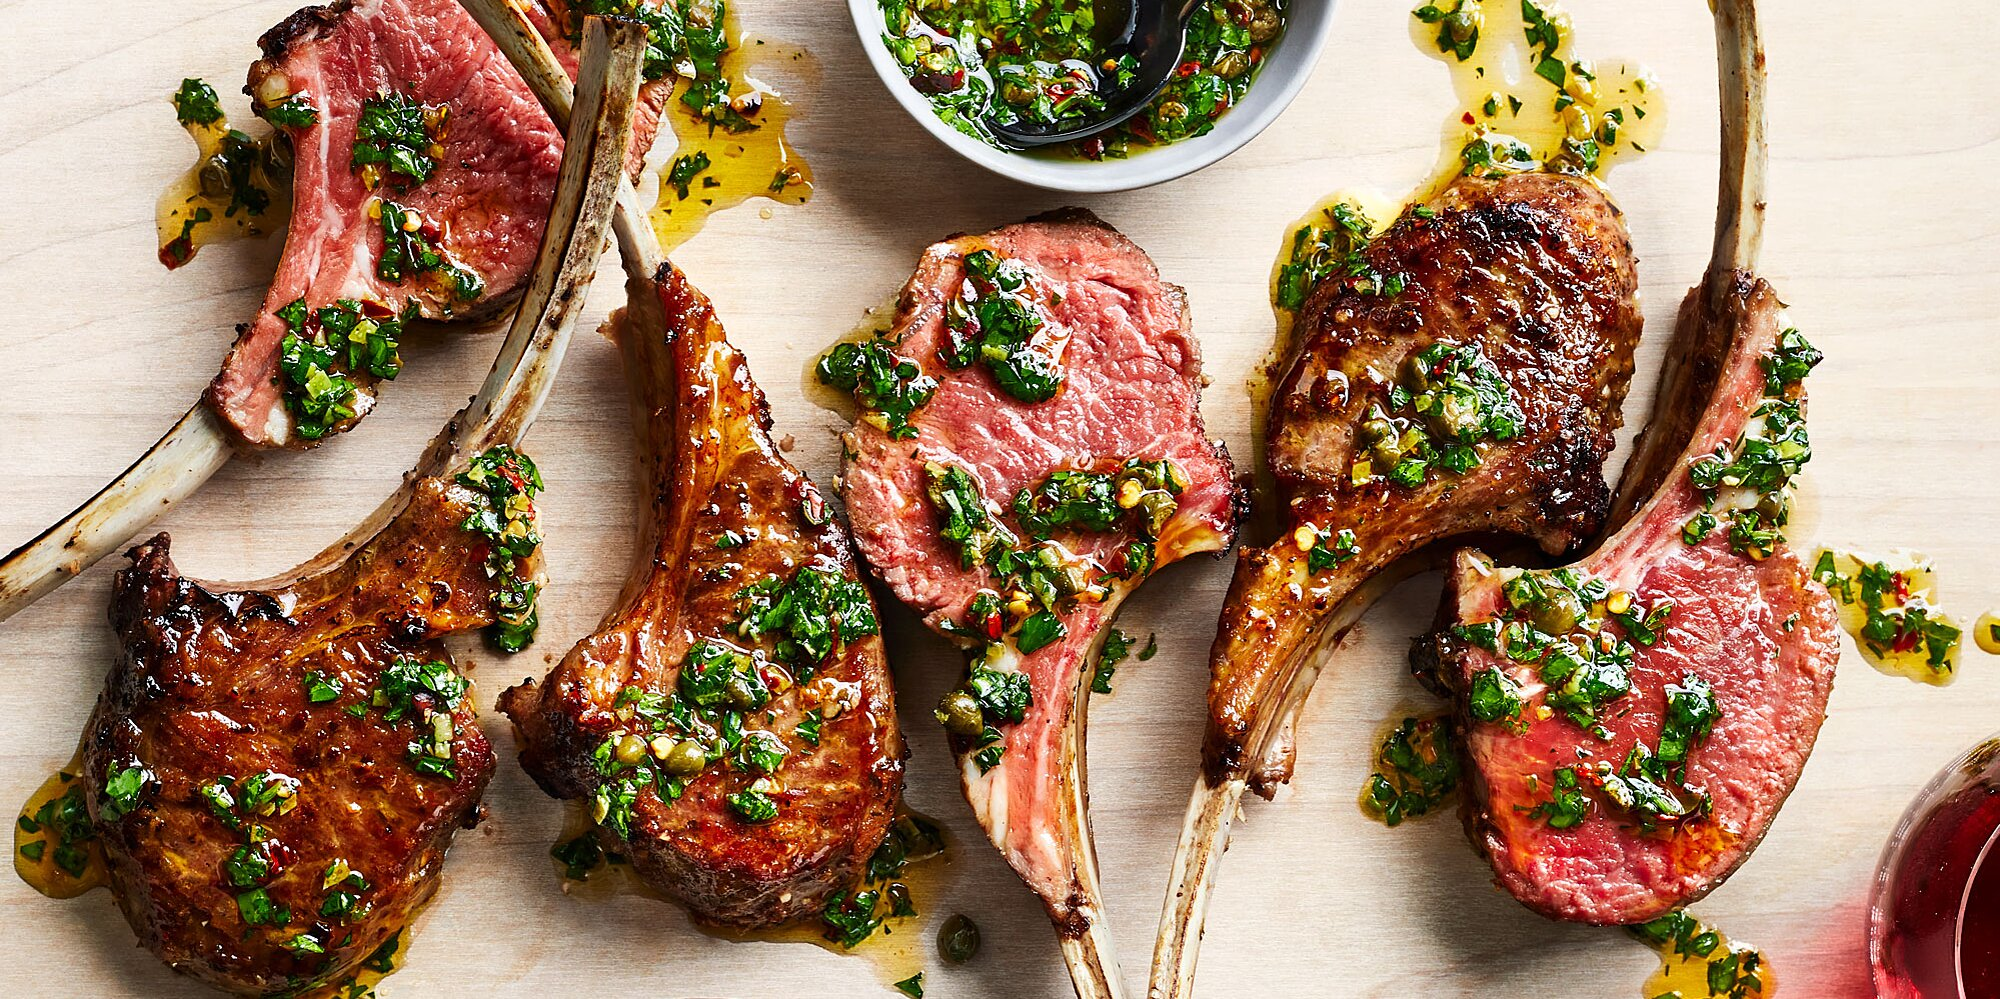 I Wasn't a Fan of Lamb Chops Until I Made These Lamb Chops